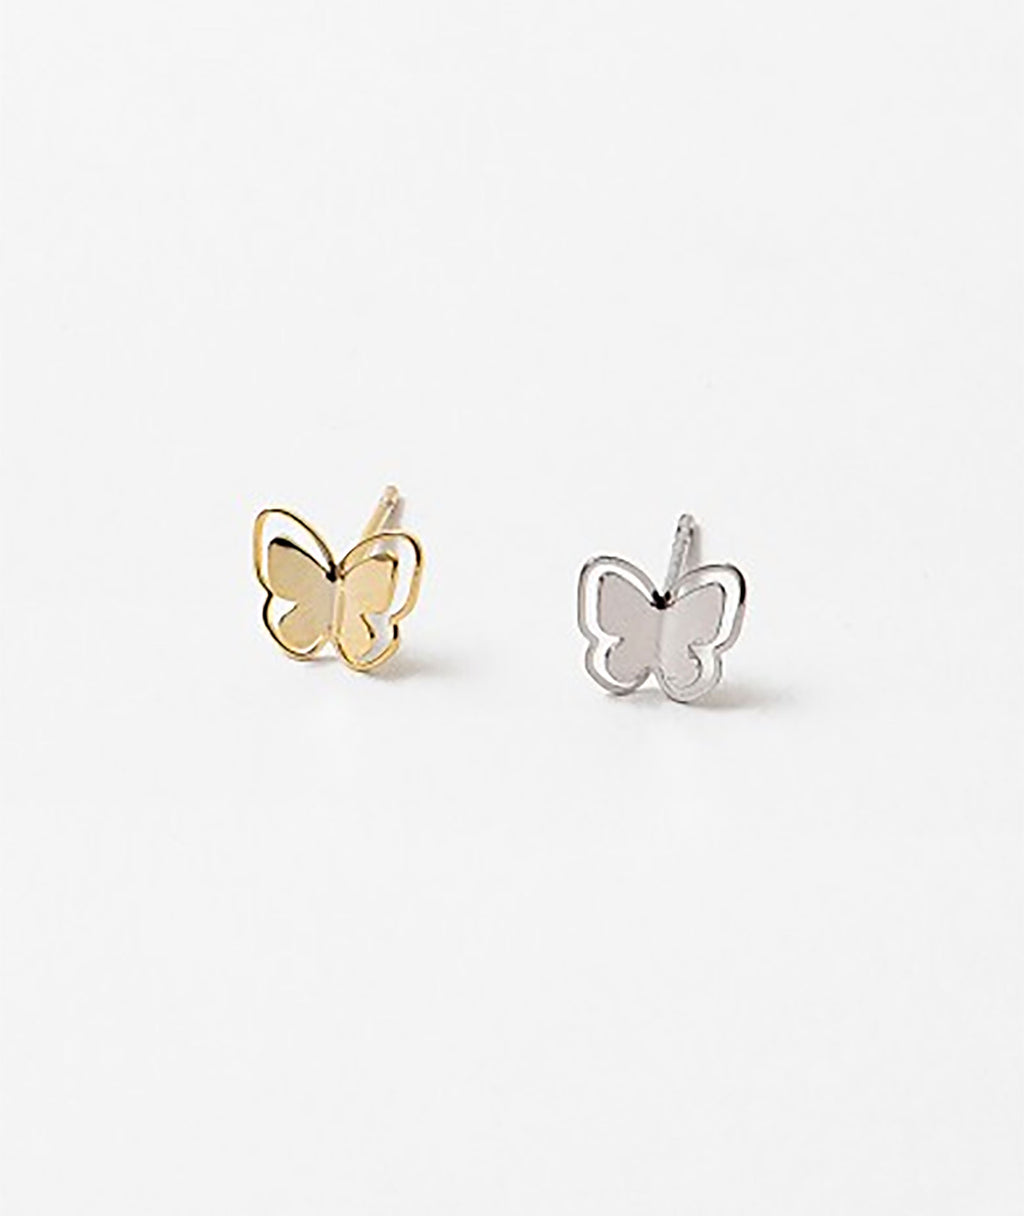 Fashionista J Silver Butterfly Earrings